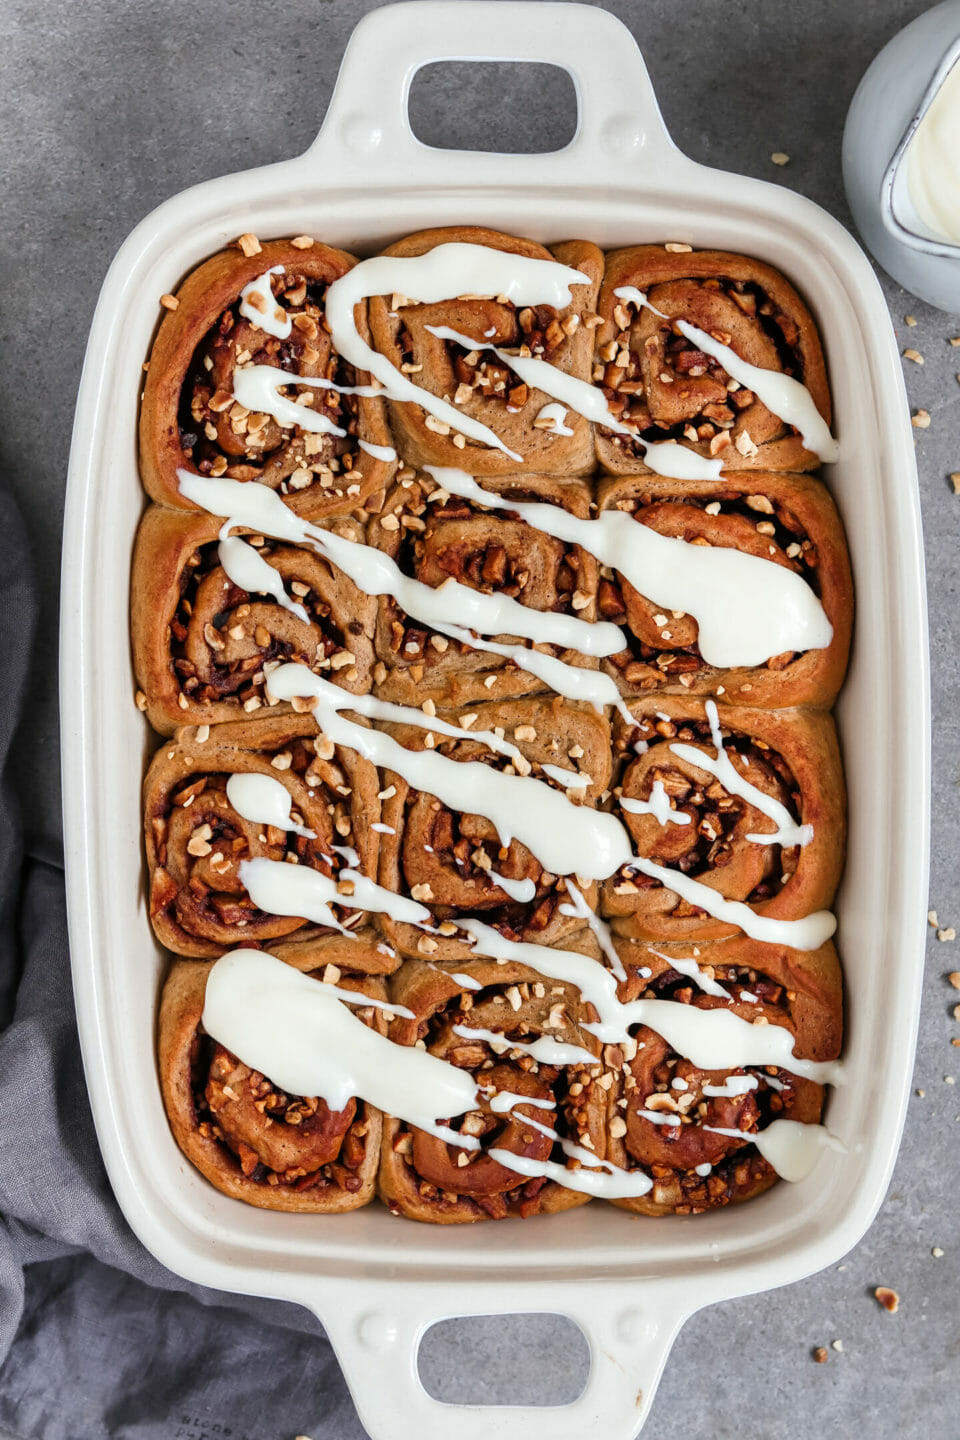 Vegan cinnamon buns with a sweet apple nut filling and cream cheese frosting served in a baking form.